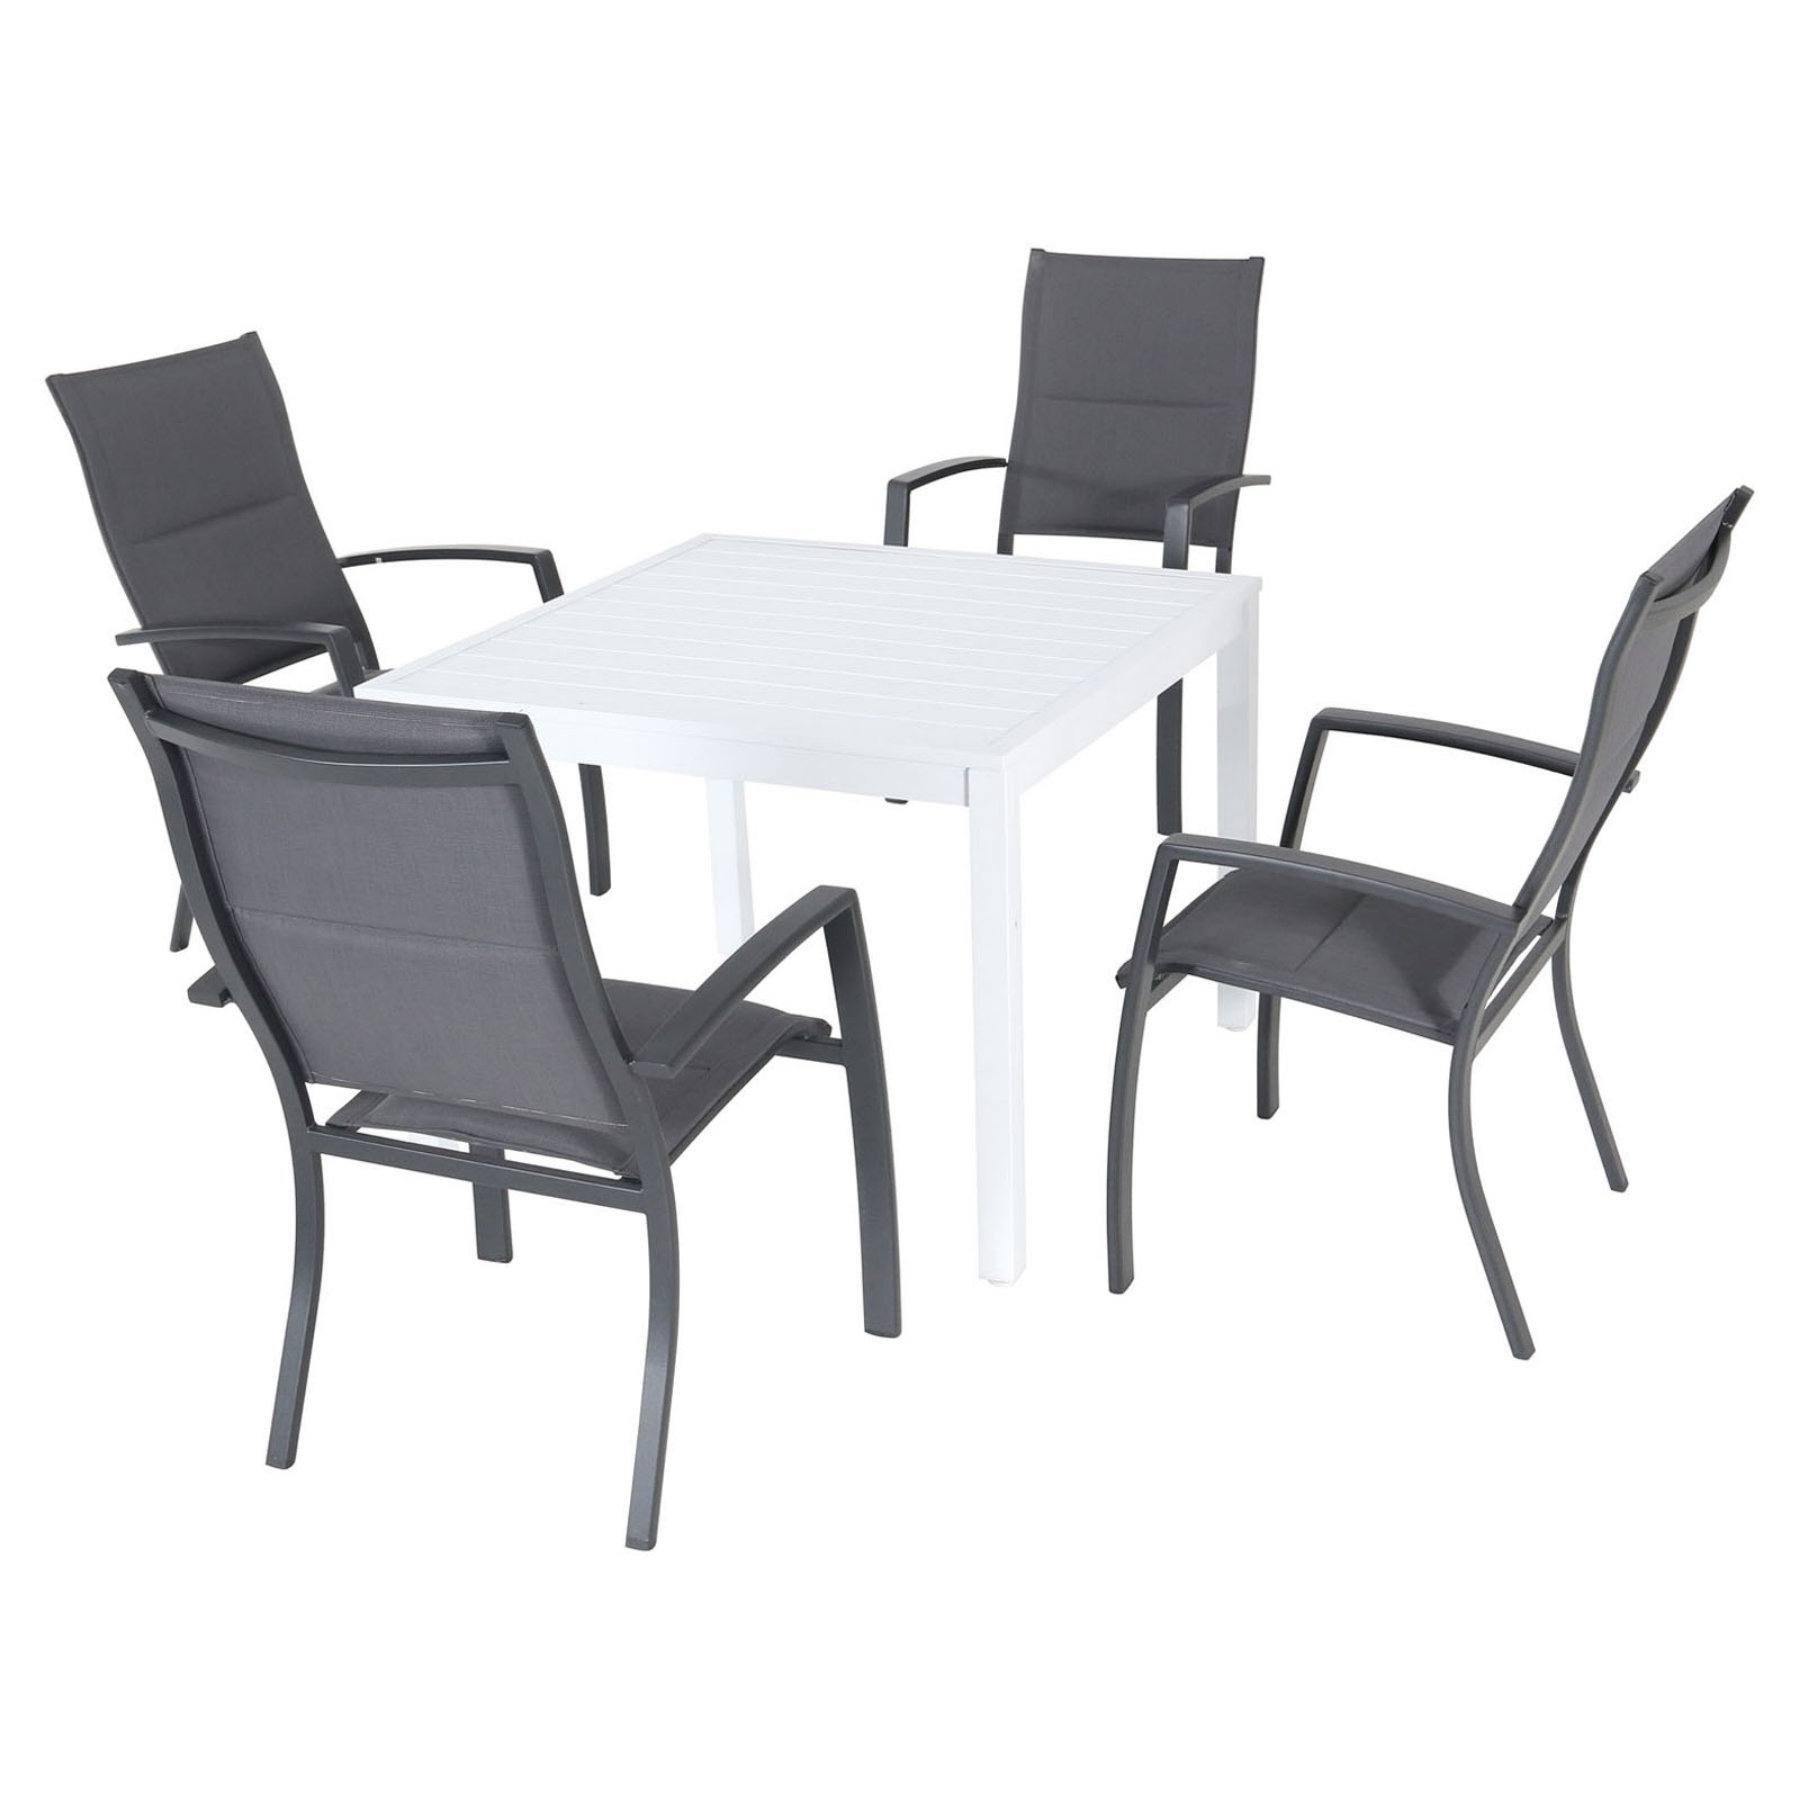 Most Recently Released Hanover Del Mar Aluminum 5 Piece Outdoor Patio Dining Set With In Delmar 5 Piece Dining Sets (View 11 of 25)